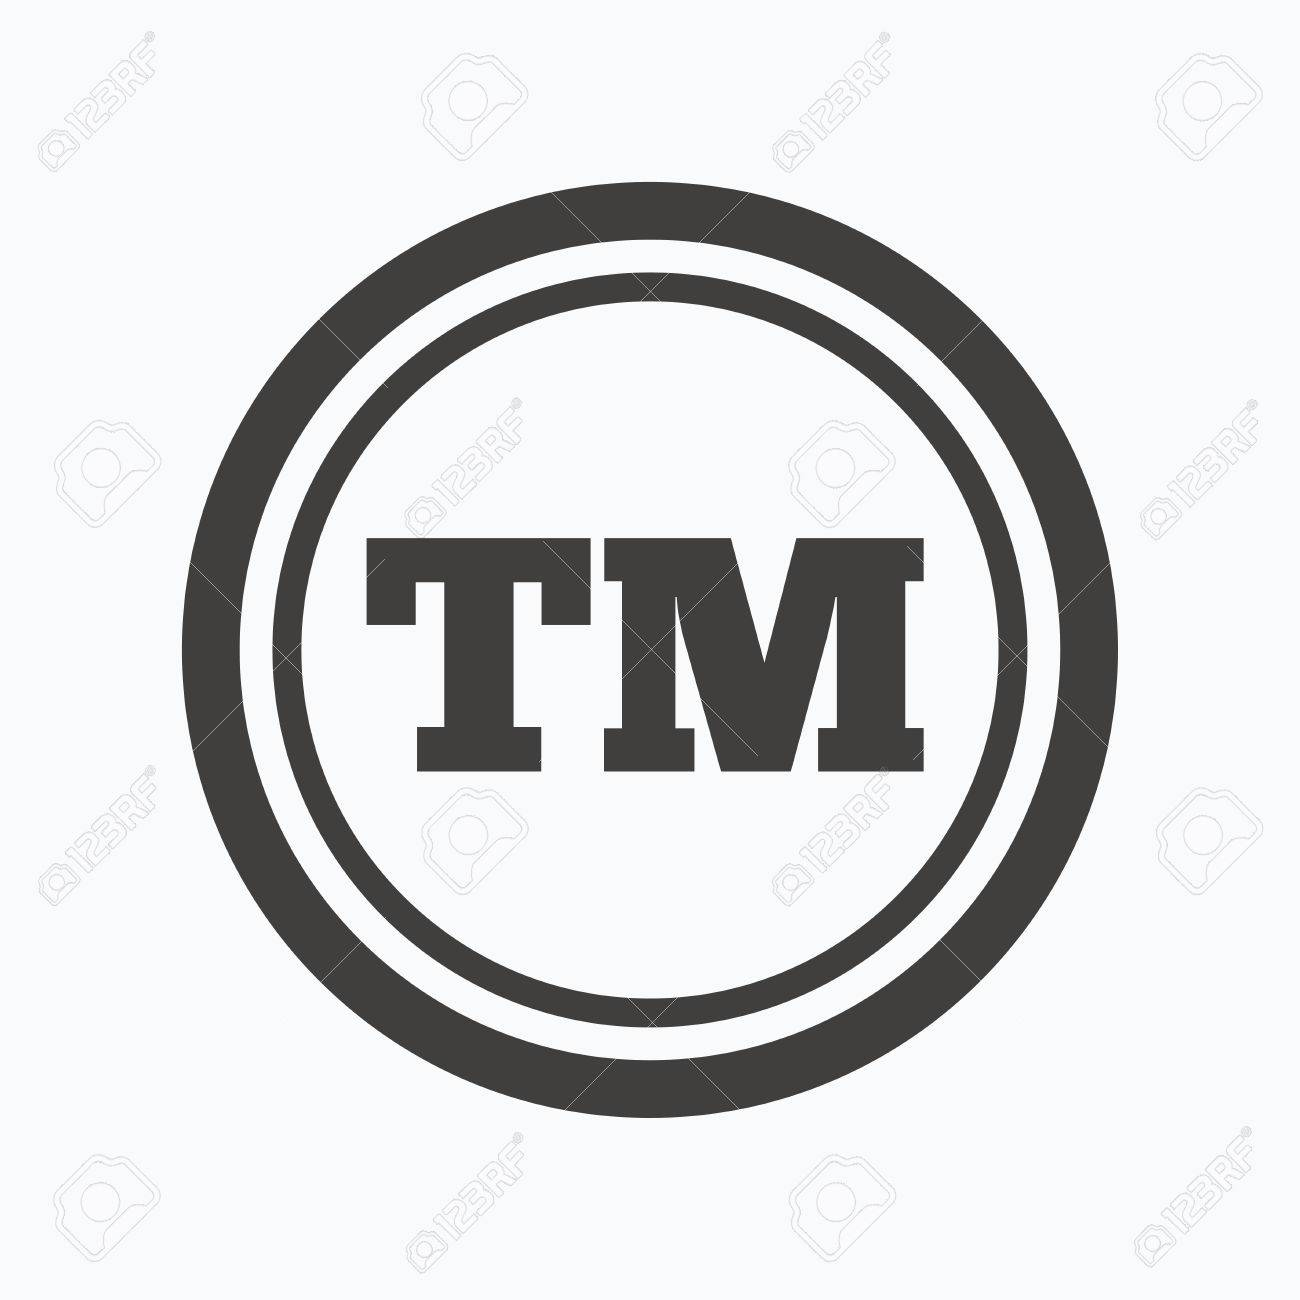 Registered tm trademark icon intellectual work protection symbol registered tm trademark icon intellectual work protection symbol gray flat web icon on white biocorpaavc Choice Image